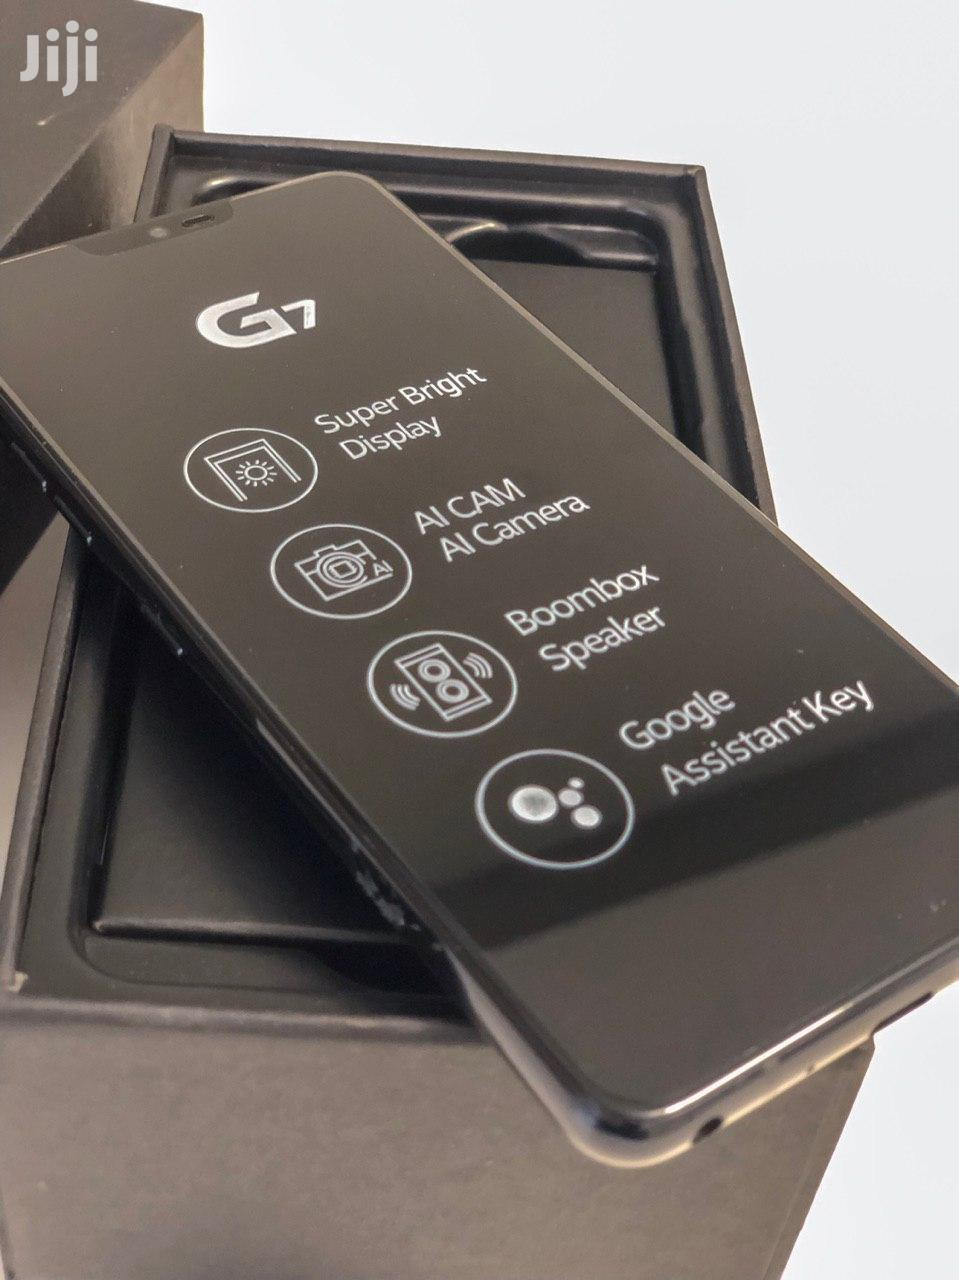 New LG G7 ThinQ 64 GB Black | Mobile Phones for sale in Accra Metropolitan, Greater Accra, Ghana